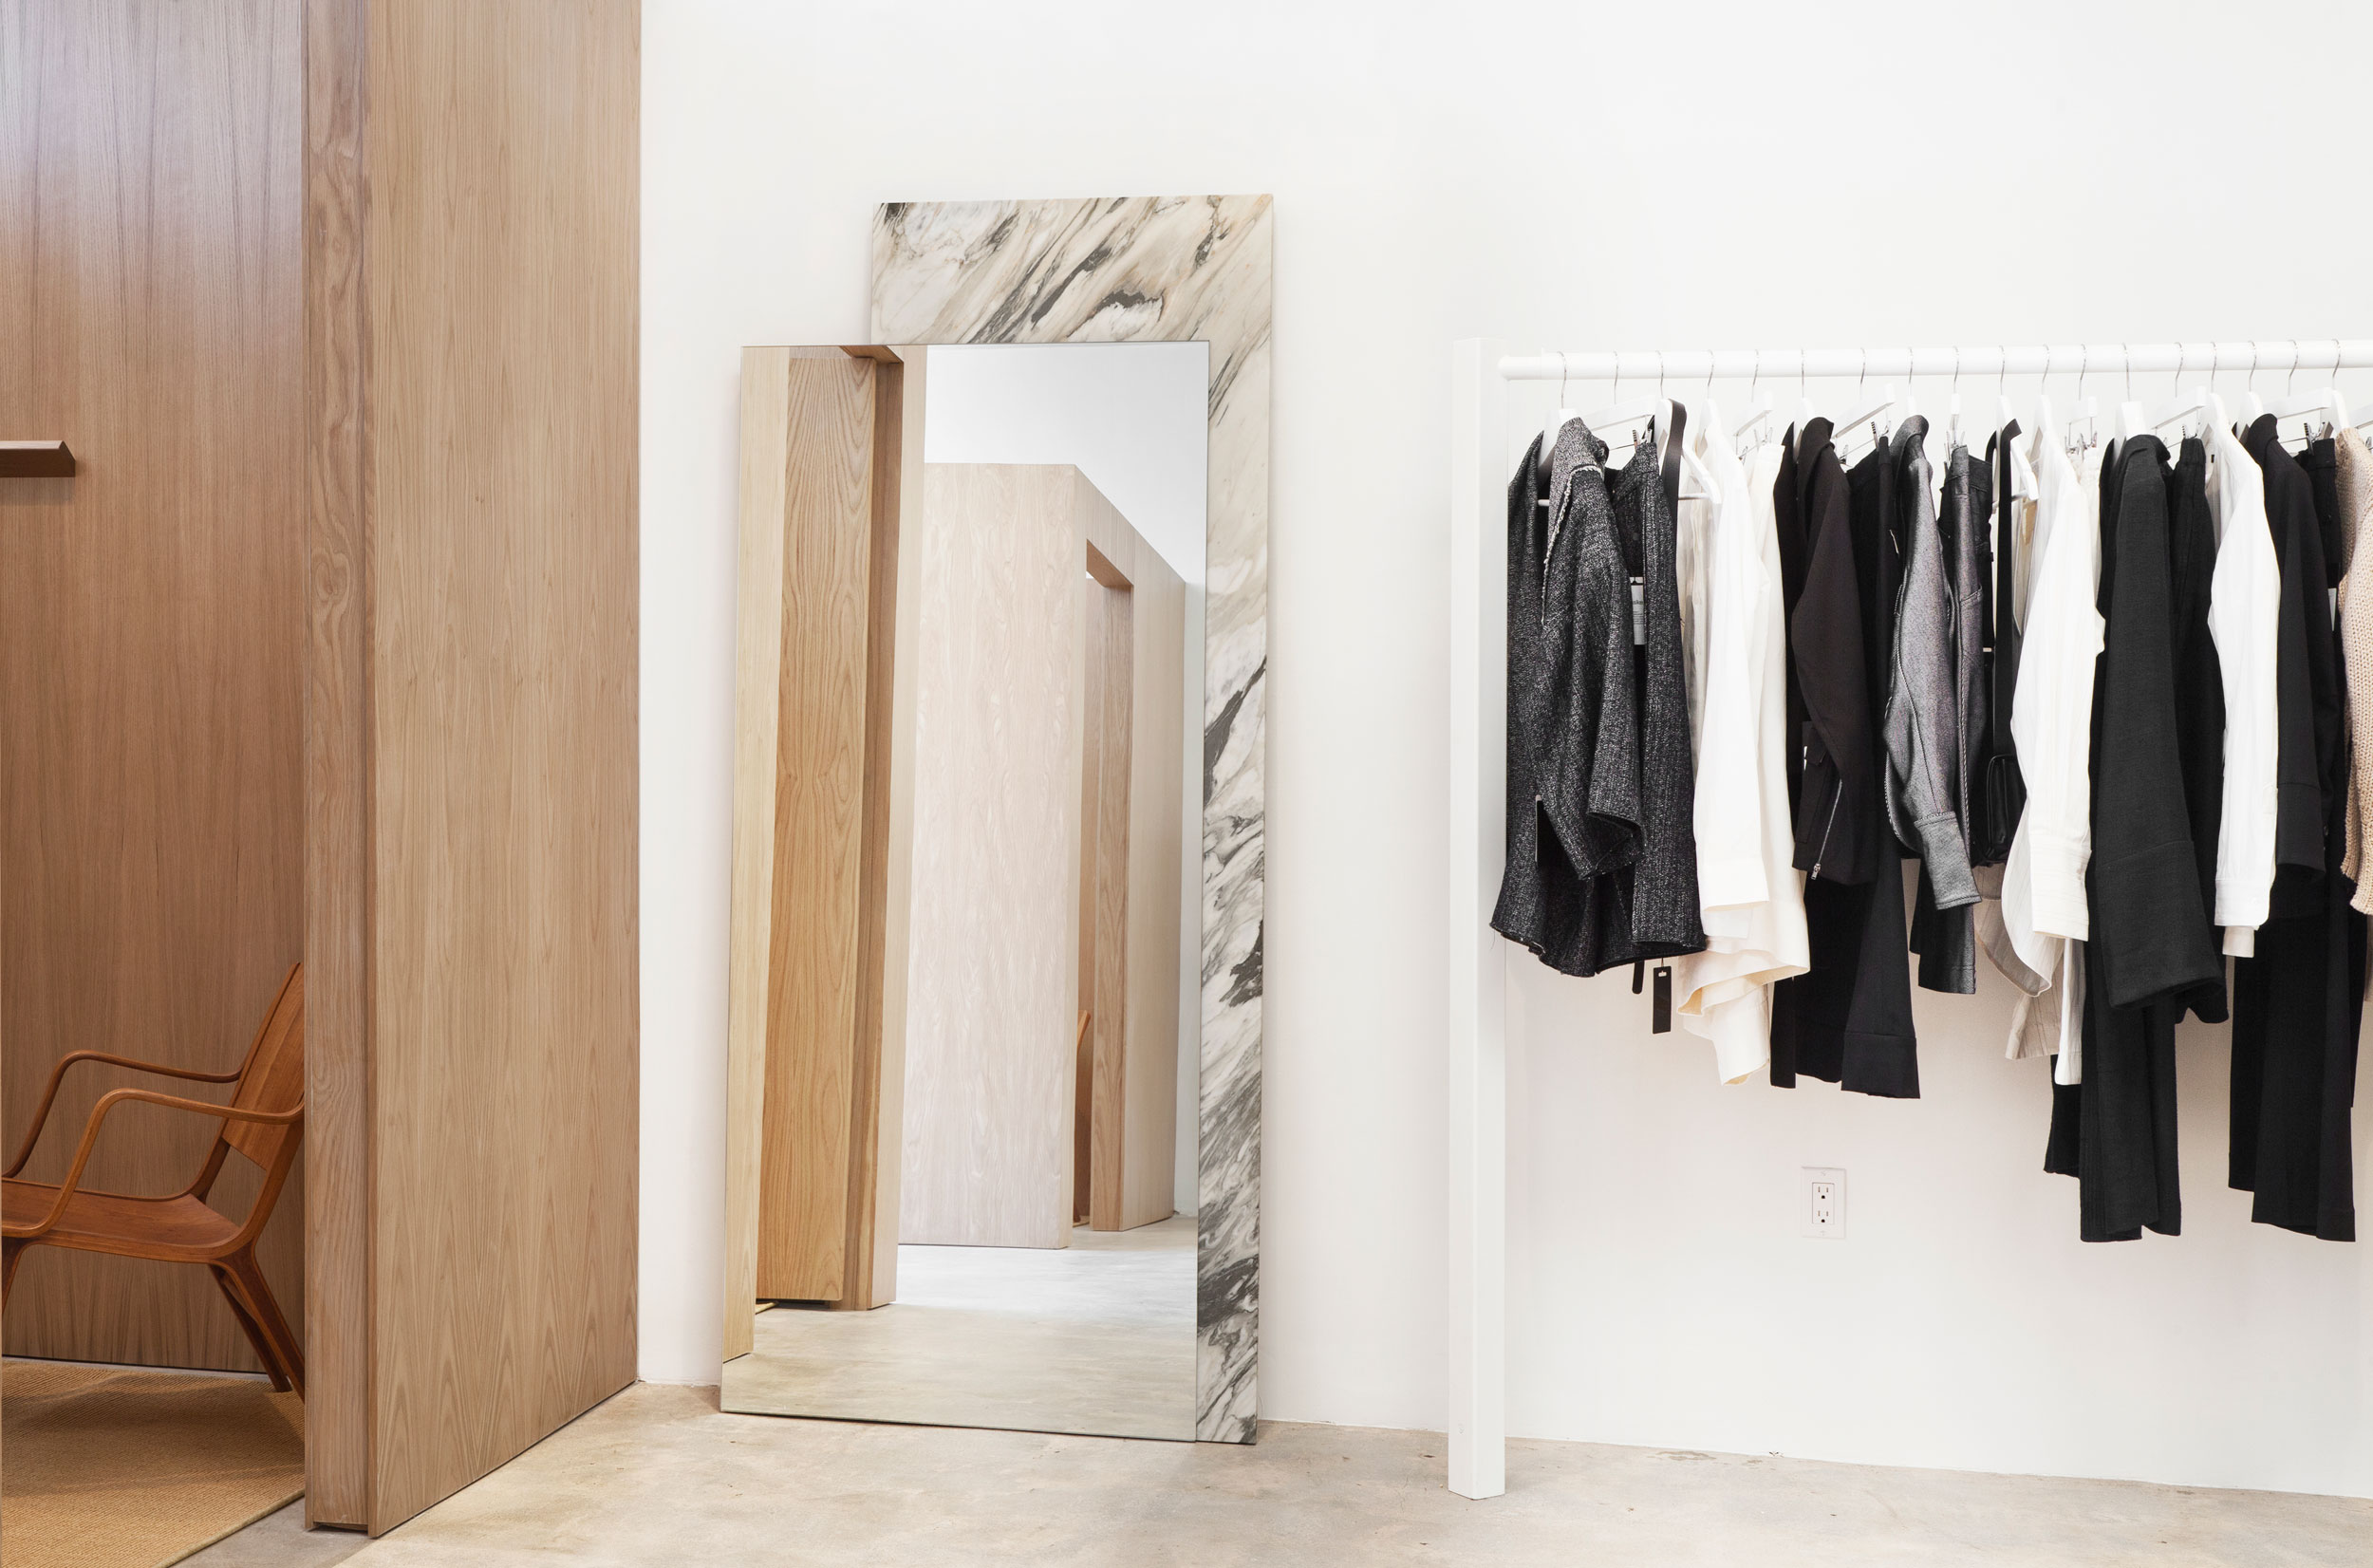 The design for the leaning mirror was conceived when Mimi saw a random composition of materials stacked against our studio walls. She took this visual language and designed a mirror using the most beautiful cut of Mountain Calacatta marble and chamfered glass to create the same effortless look.